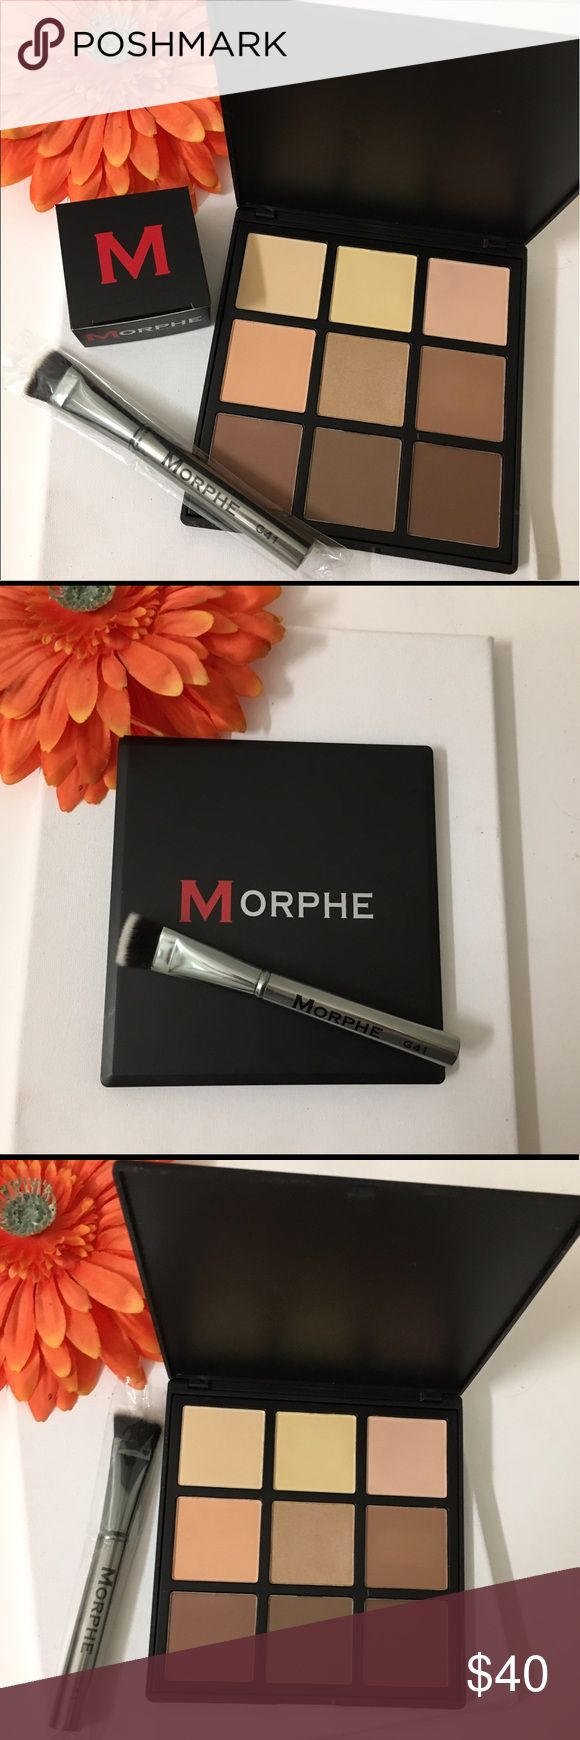 💯🎉Morphe x2 9c contour & morphe  contour brush Authentic as always ! Brand new in box . Receive morphe white contour / foundation / concealer brush in white ! From a limited set ! Bundle and save. Brush you receive is brush in last pic ! 👍🏼 morphe Makeup